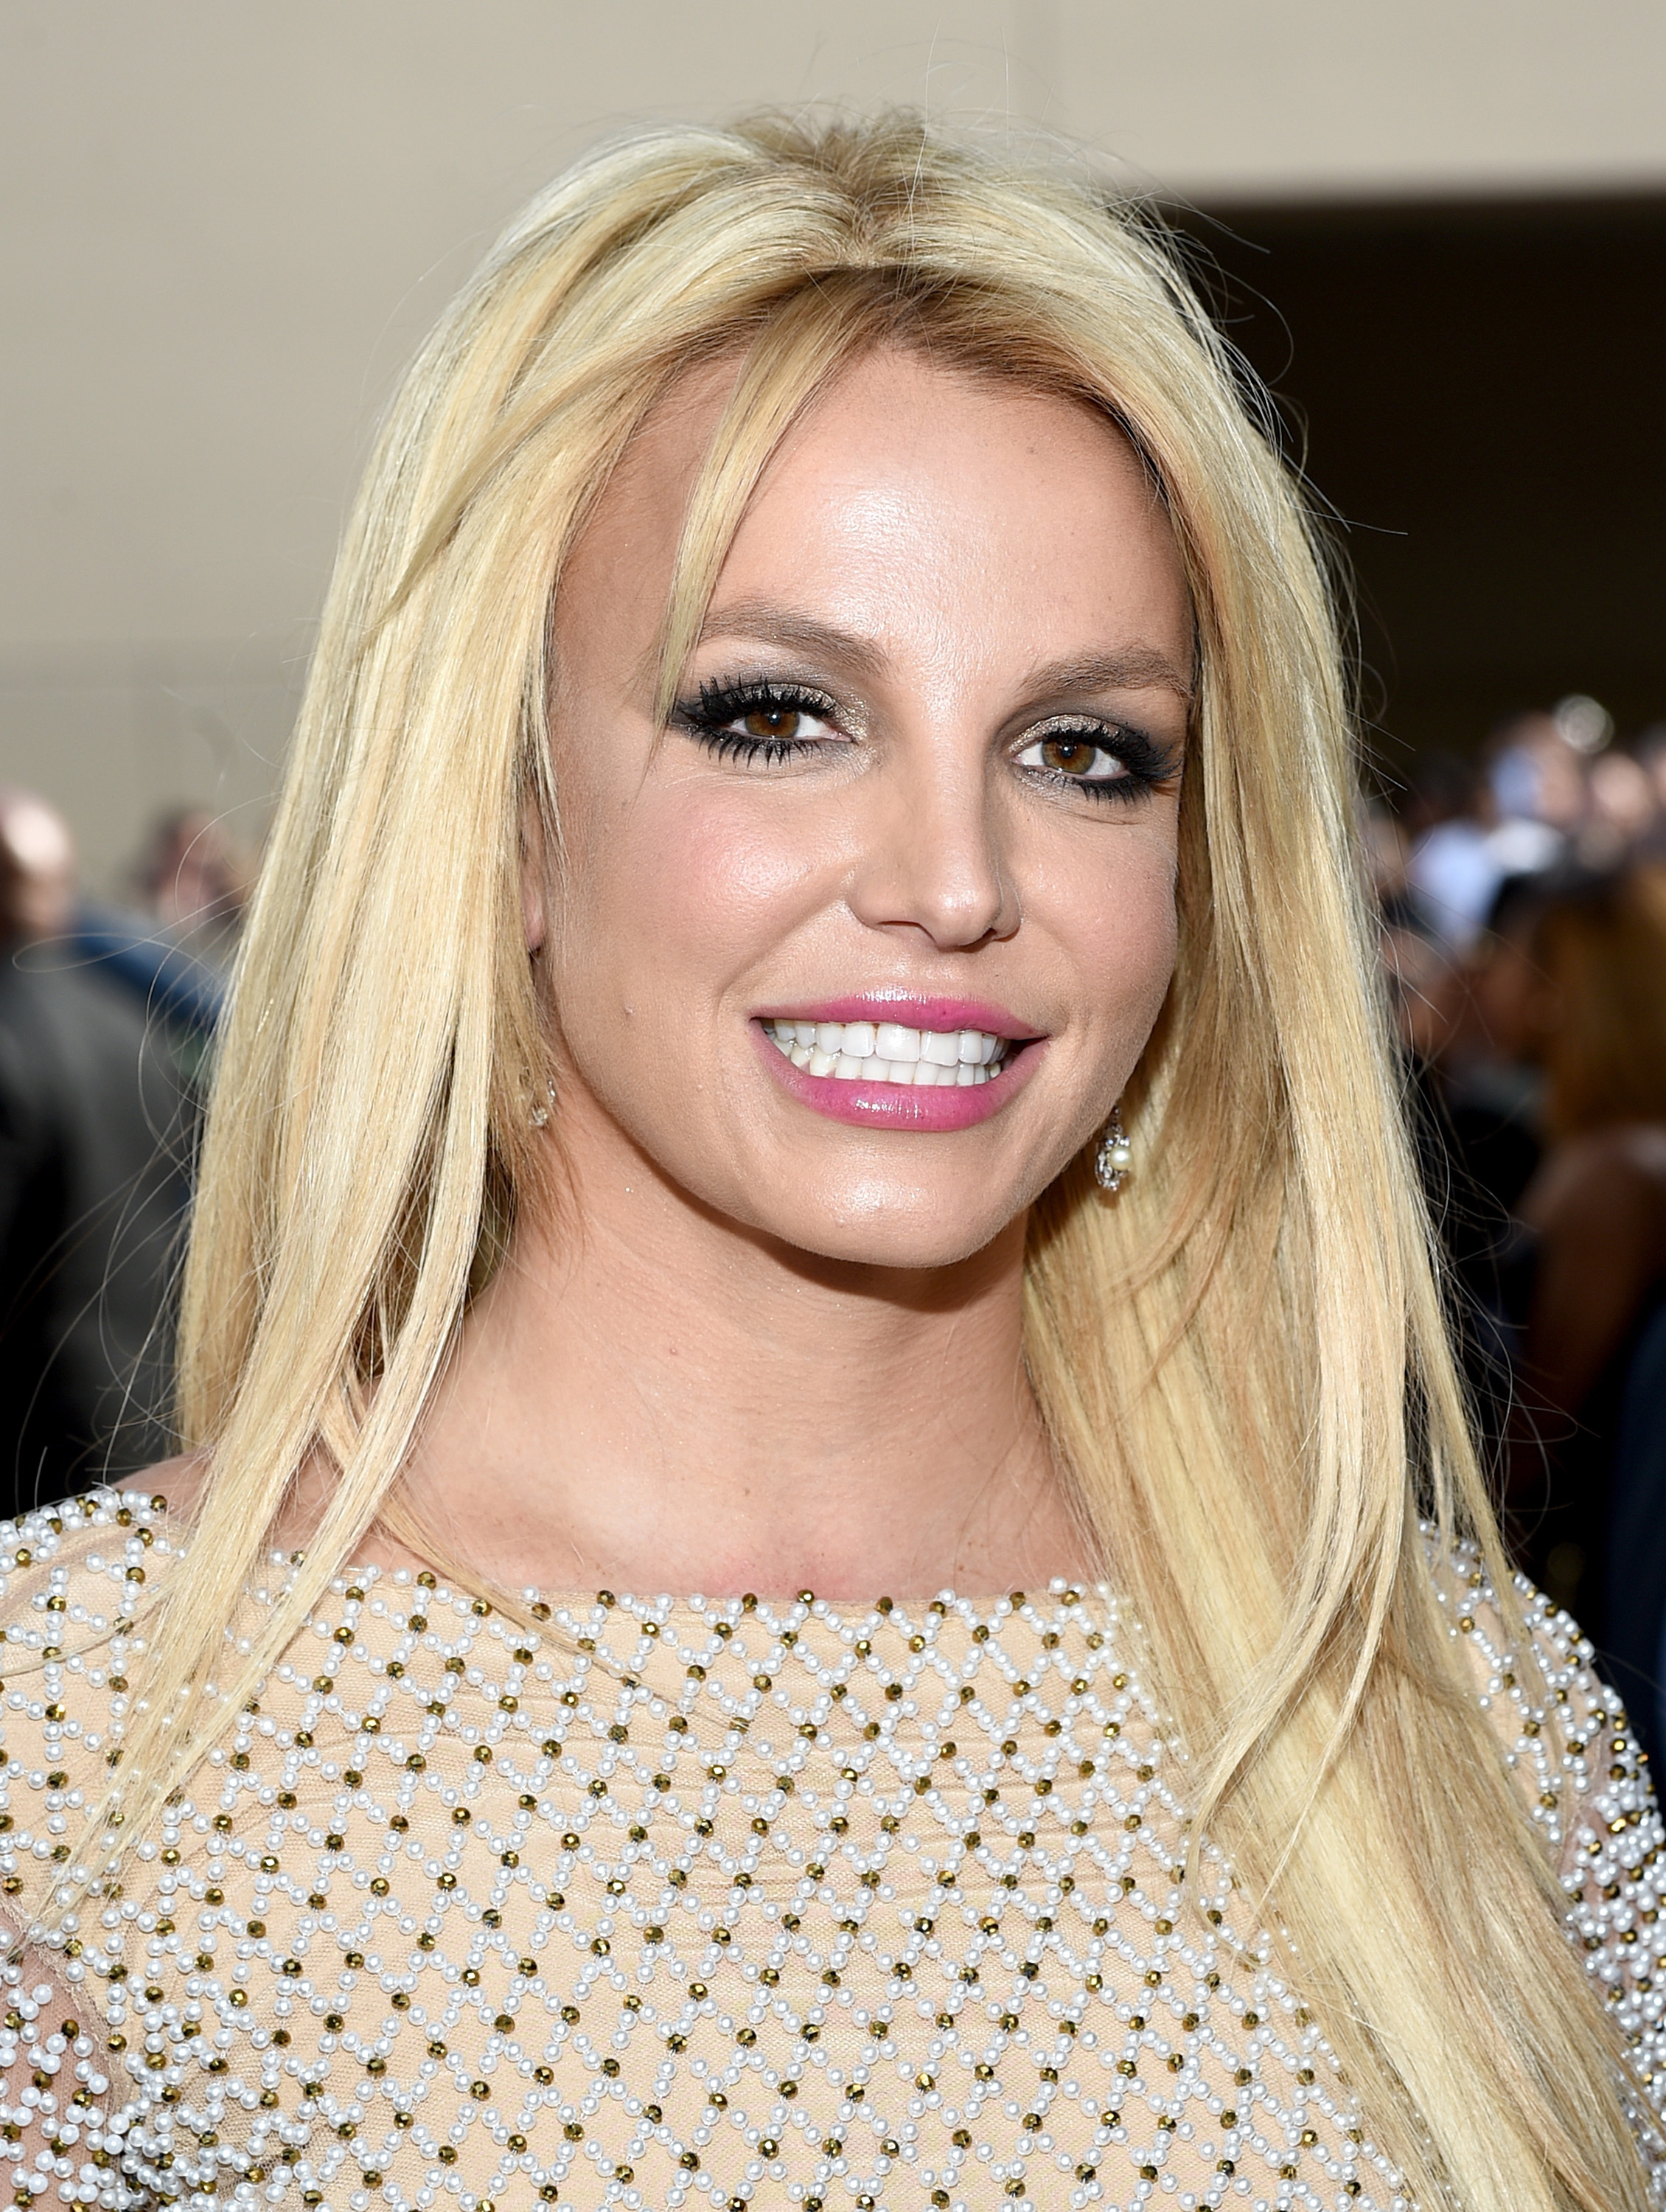 Recording artist Britney Spears attends the 2015 Billboard Music Awards at MGM Grand Garden Arena on May 17, 2015 in Las Vegas.